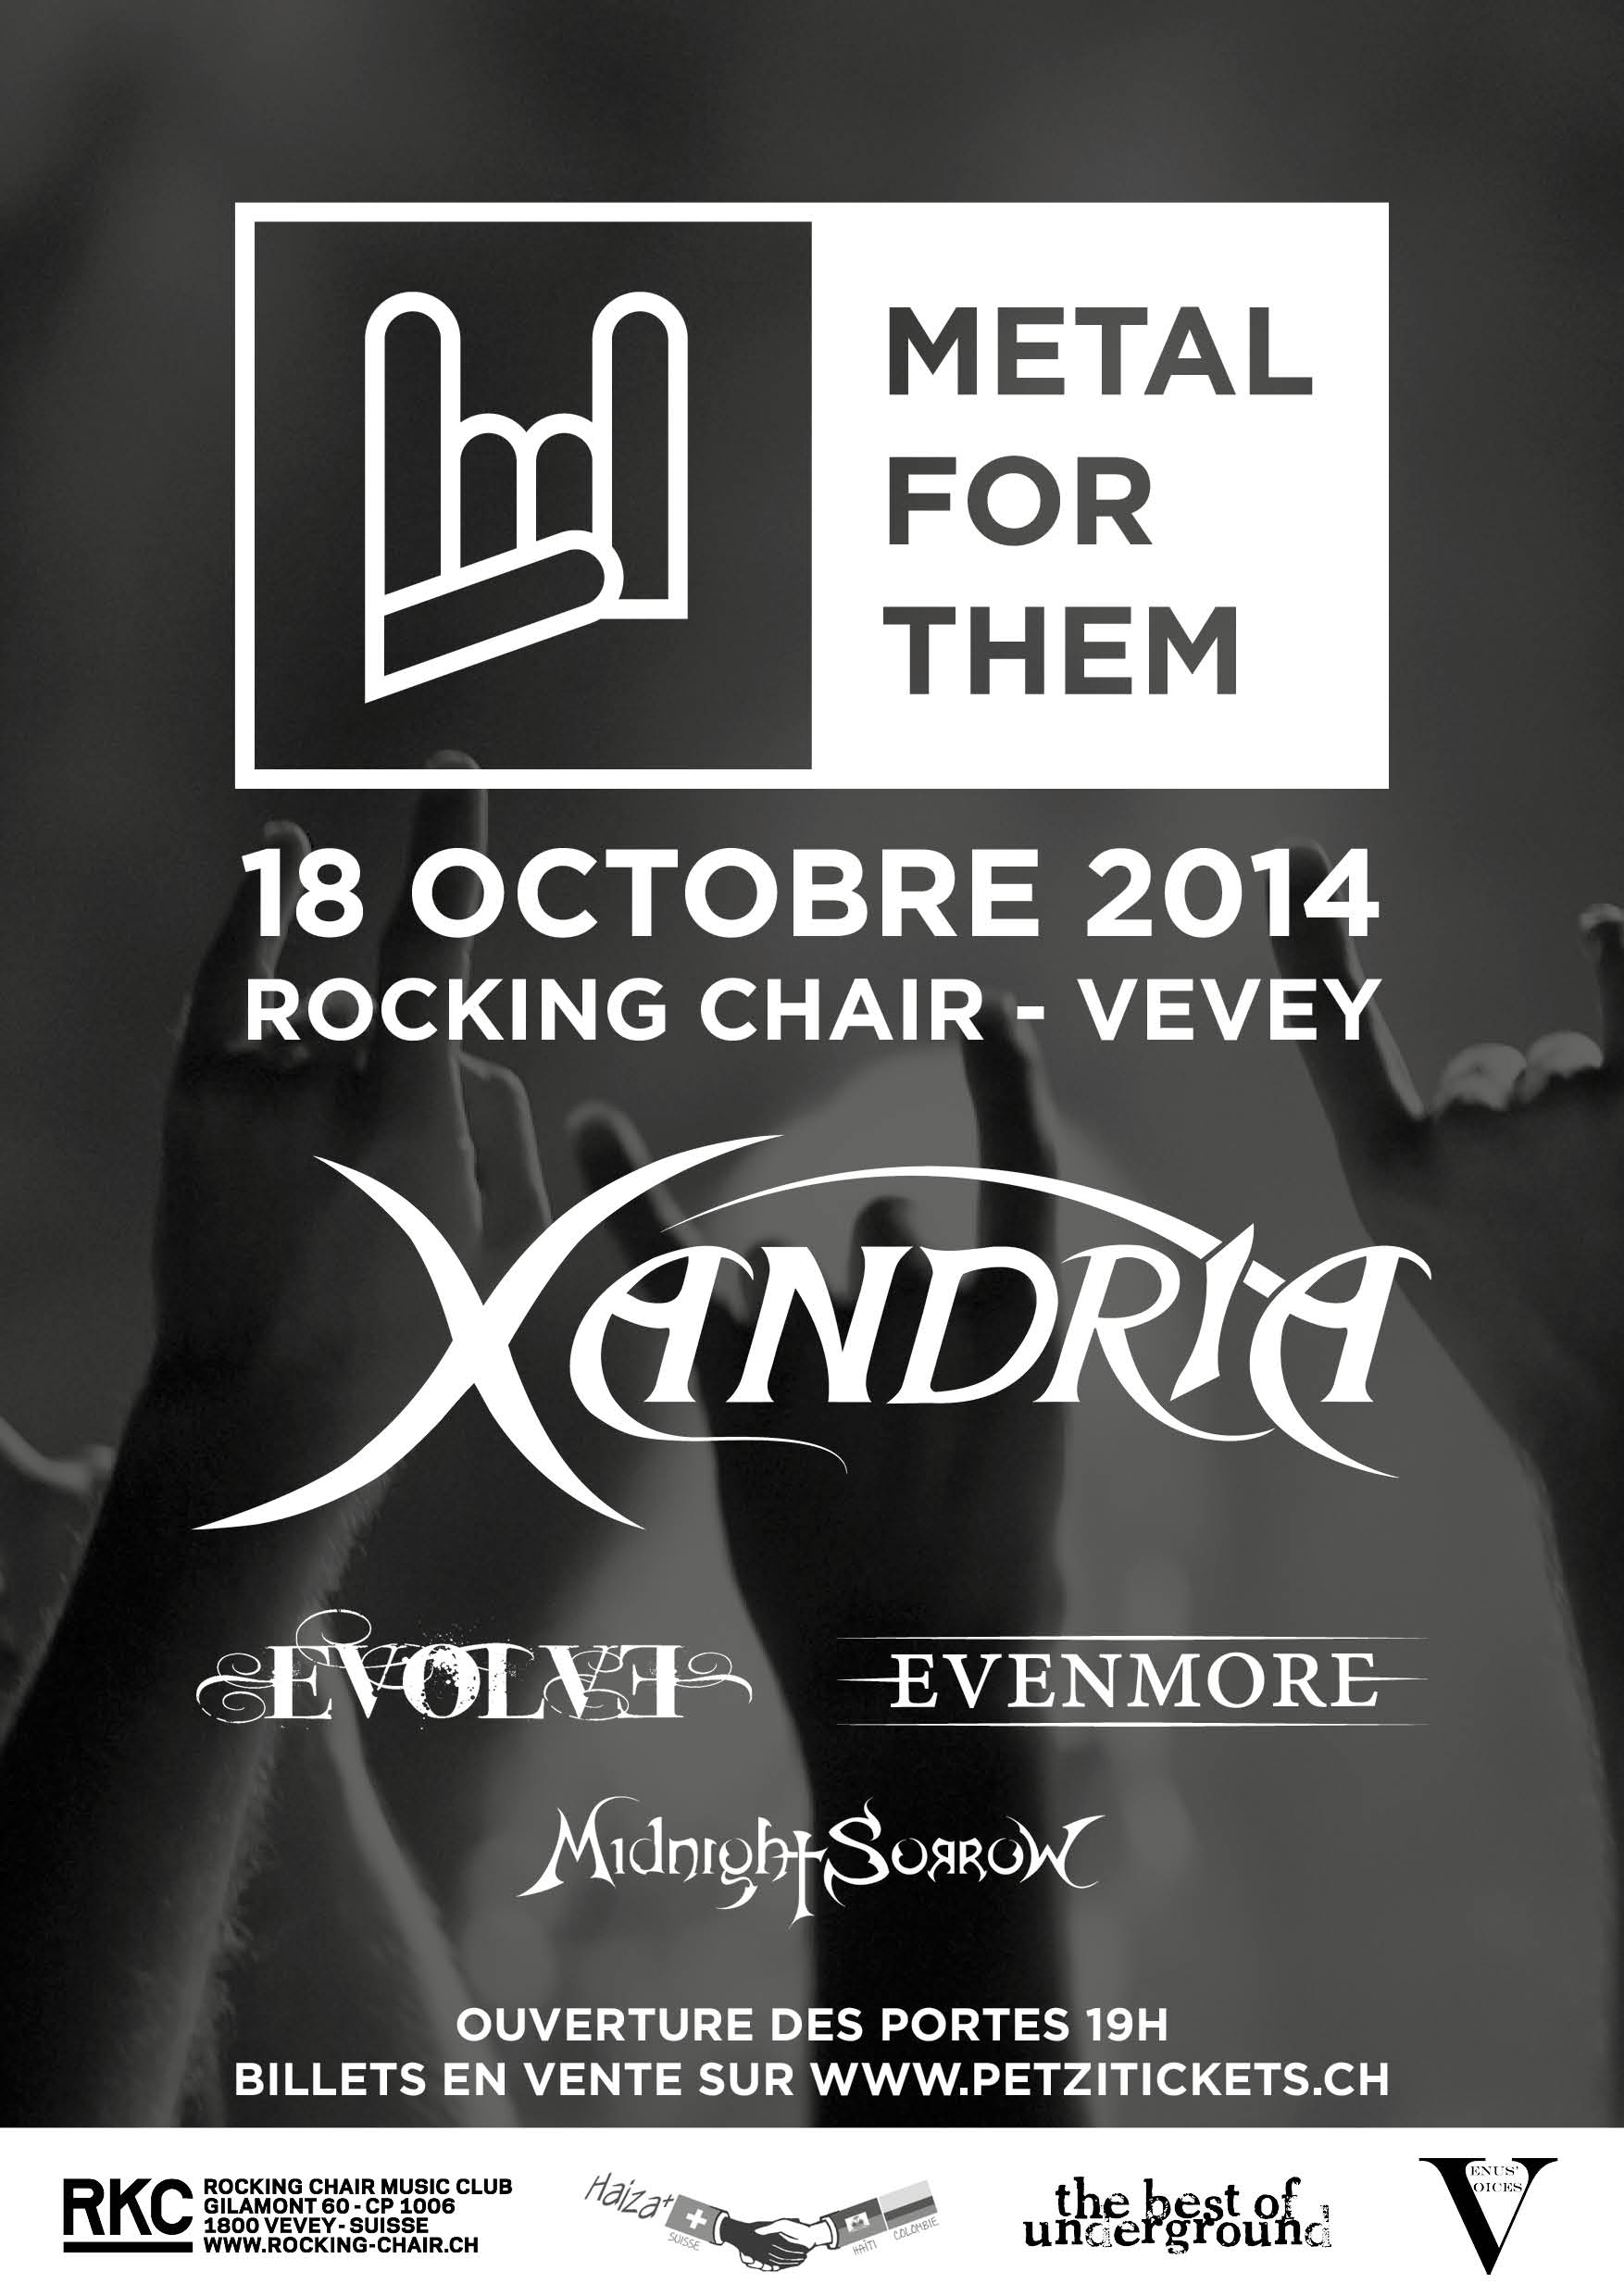 18.10.12 METAL FOR THEM - Rocking Chair Vevey